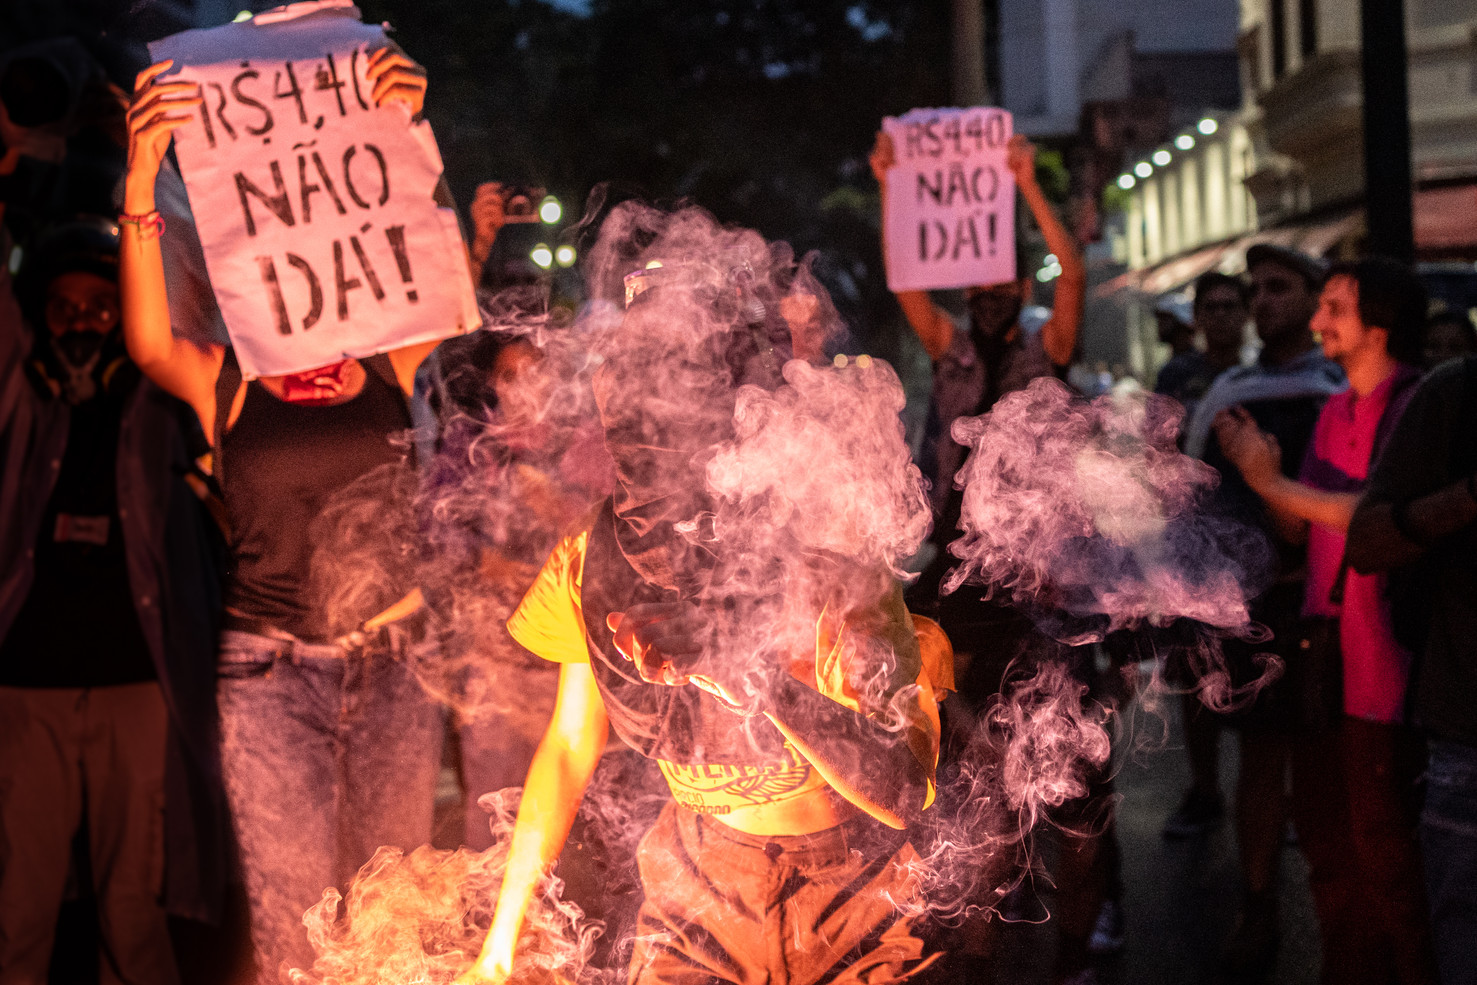 "Demonstrators hold up little flares and a signs that reads ""R$ 4,40 no way"" during the second day of protests against the fare hikes for public transportation in Sao Paulo, Brazil, January 09, 2020."